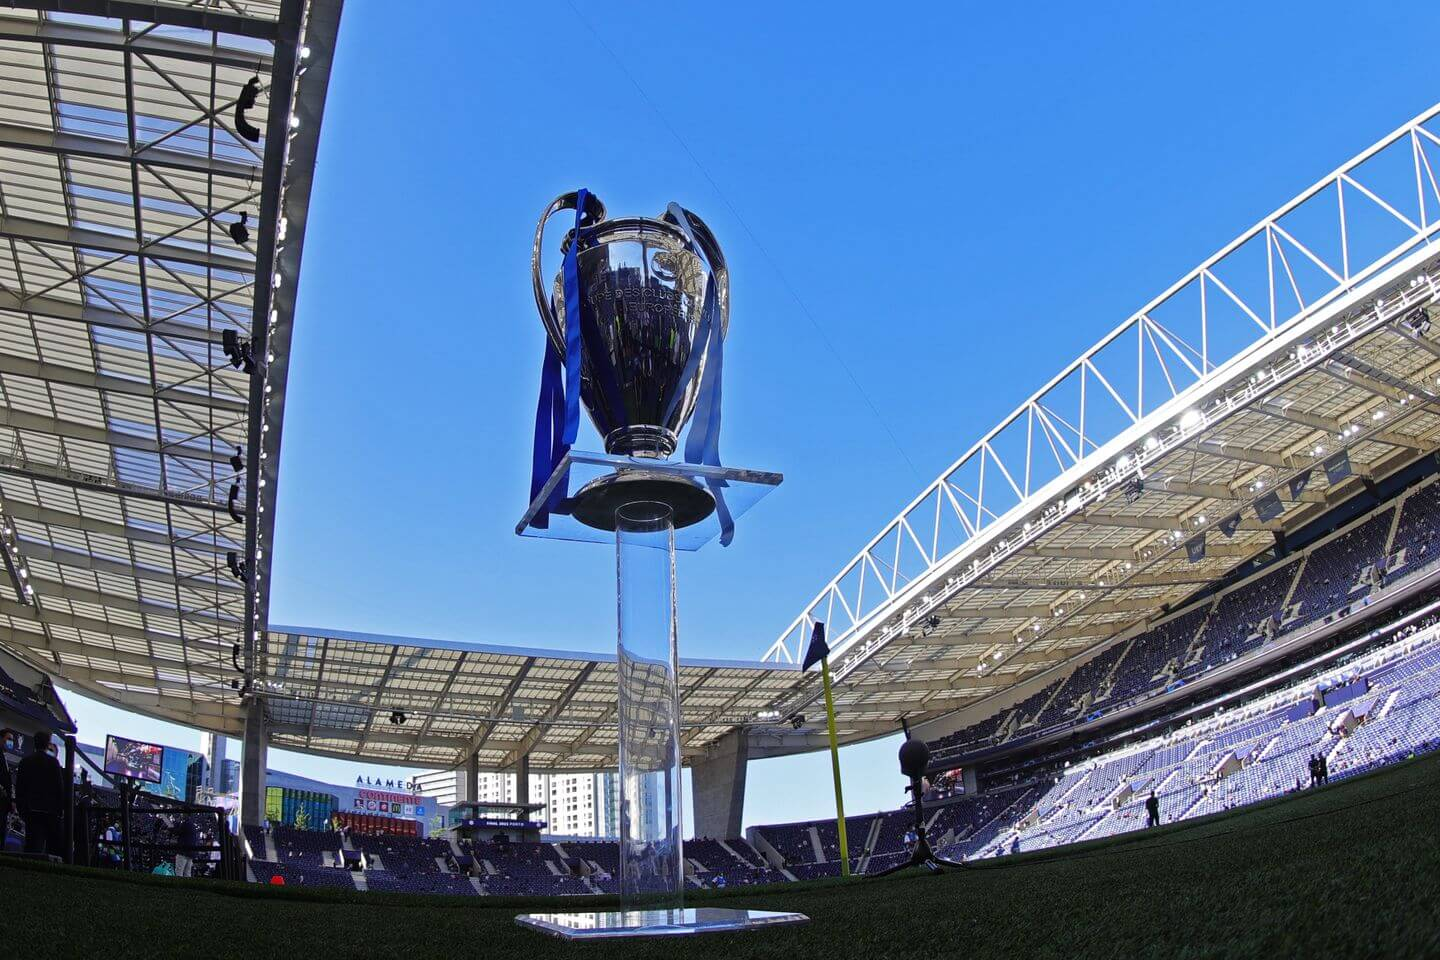 Champions League draw live updates: Manchester United, Liverpool, Real Madrid and PSG brackets for group stage latest